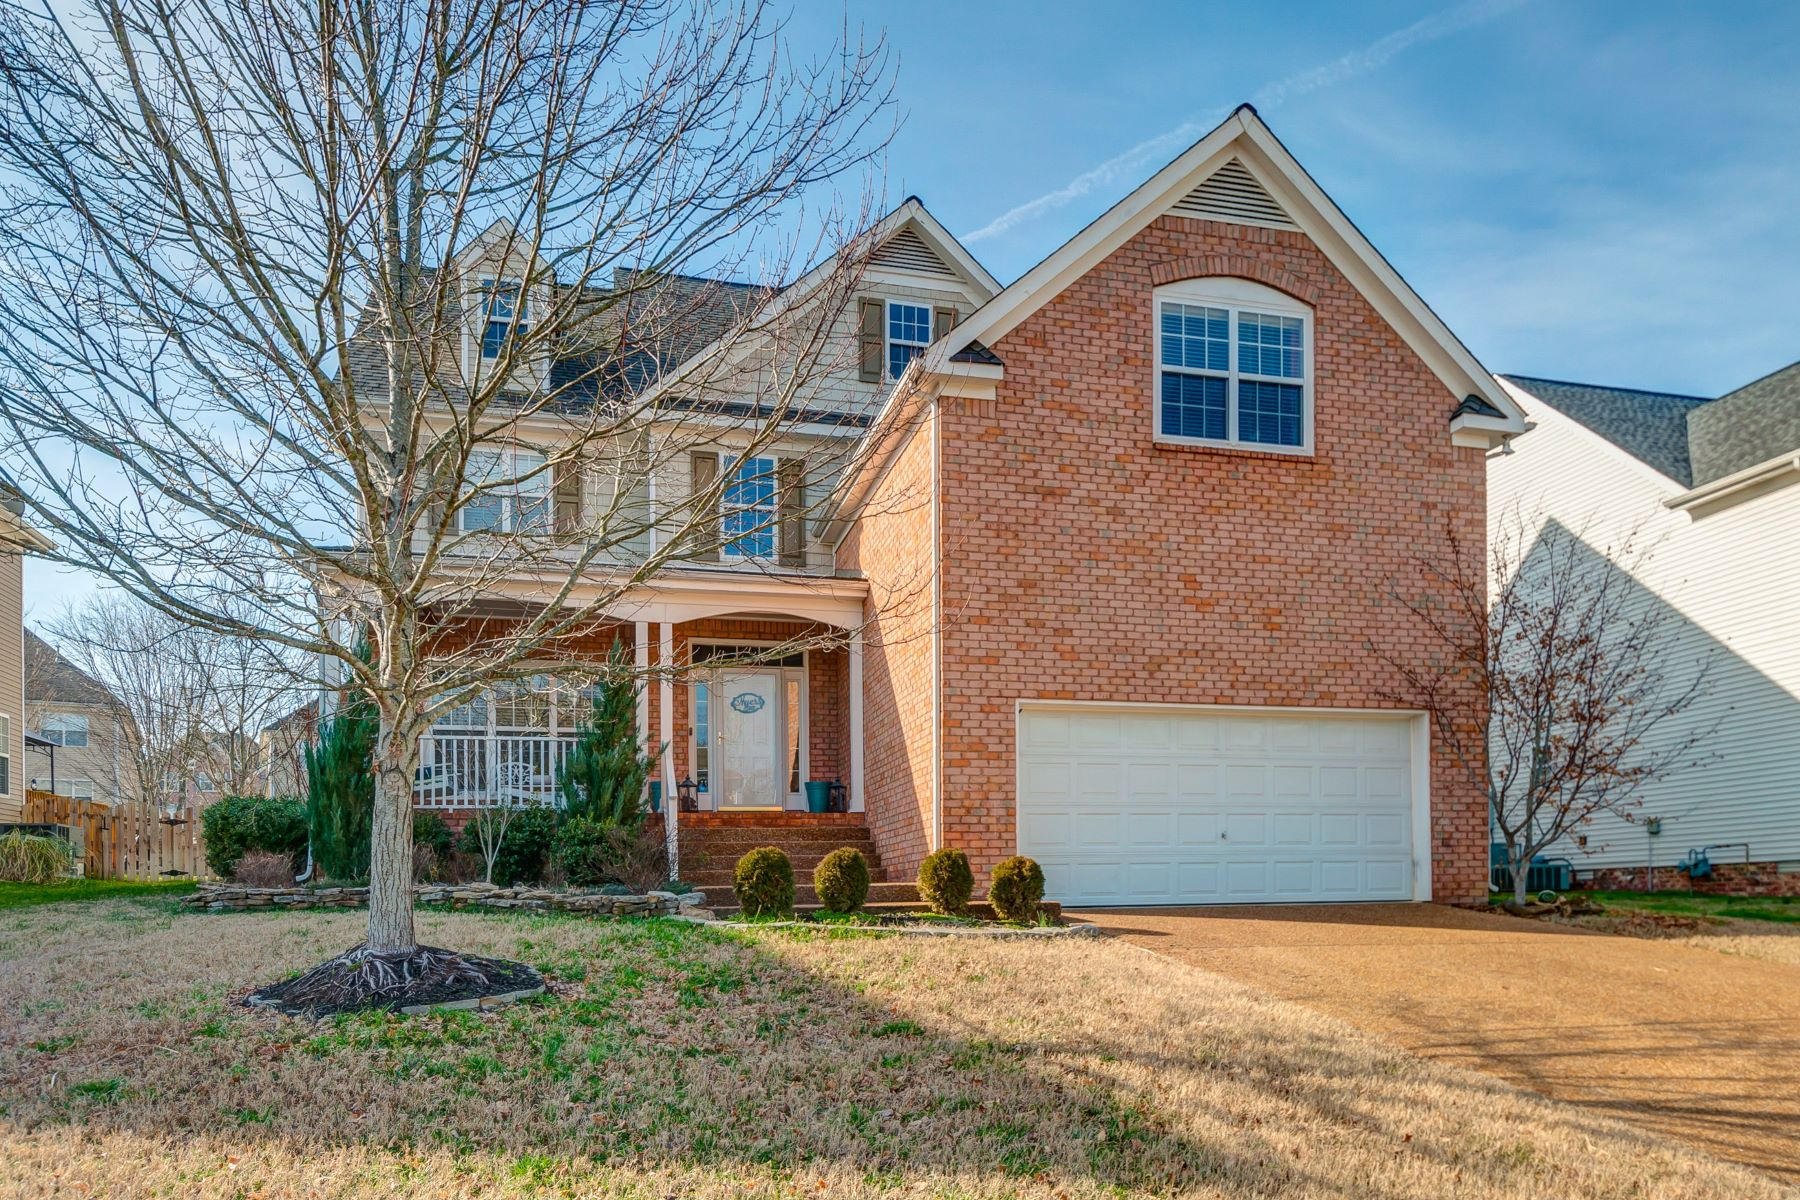 Single Family Homes for Active at Upgraded Spring Hill Beauty! 3022 Romain Trail Spring Hill, Tennessee 37174 United States